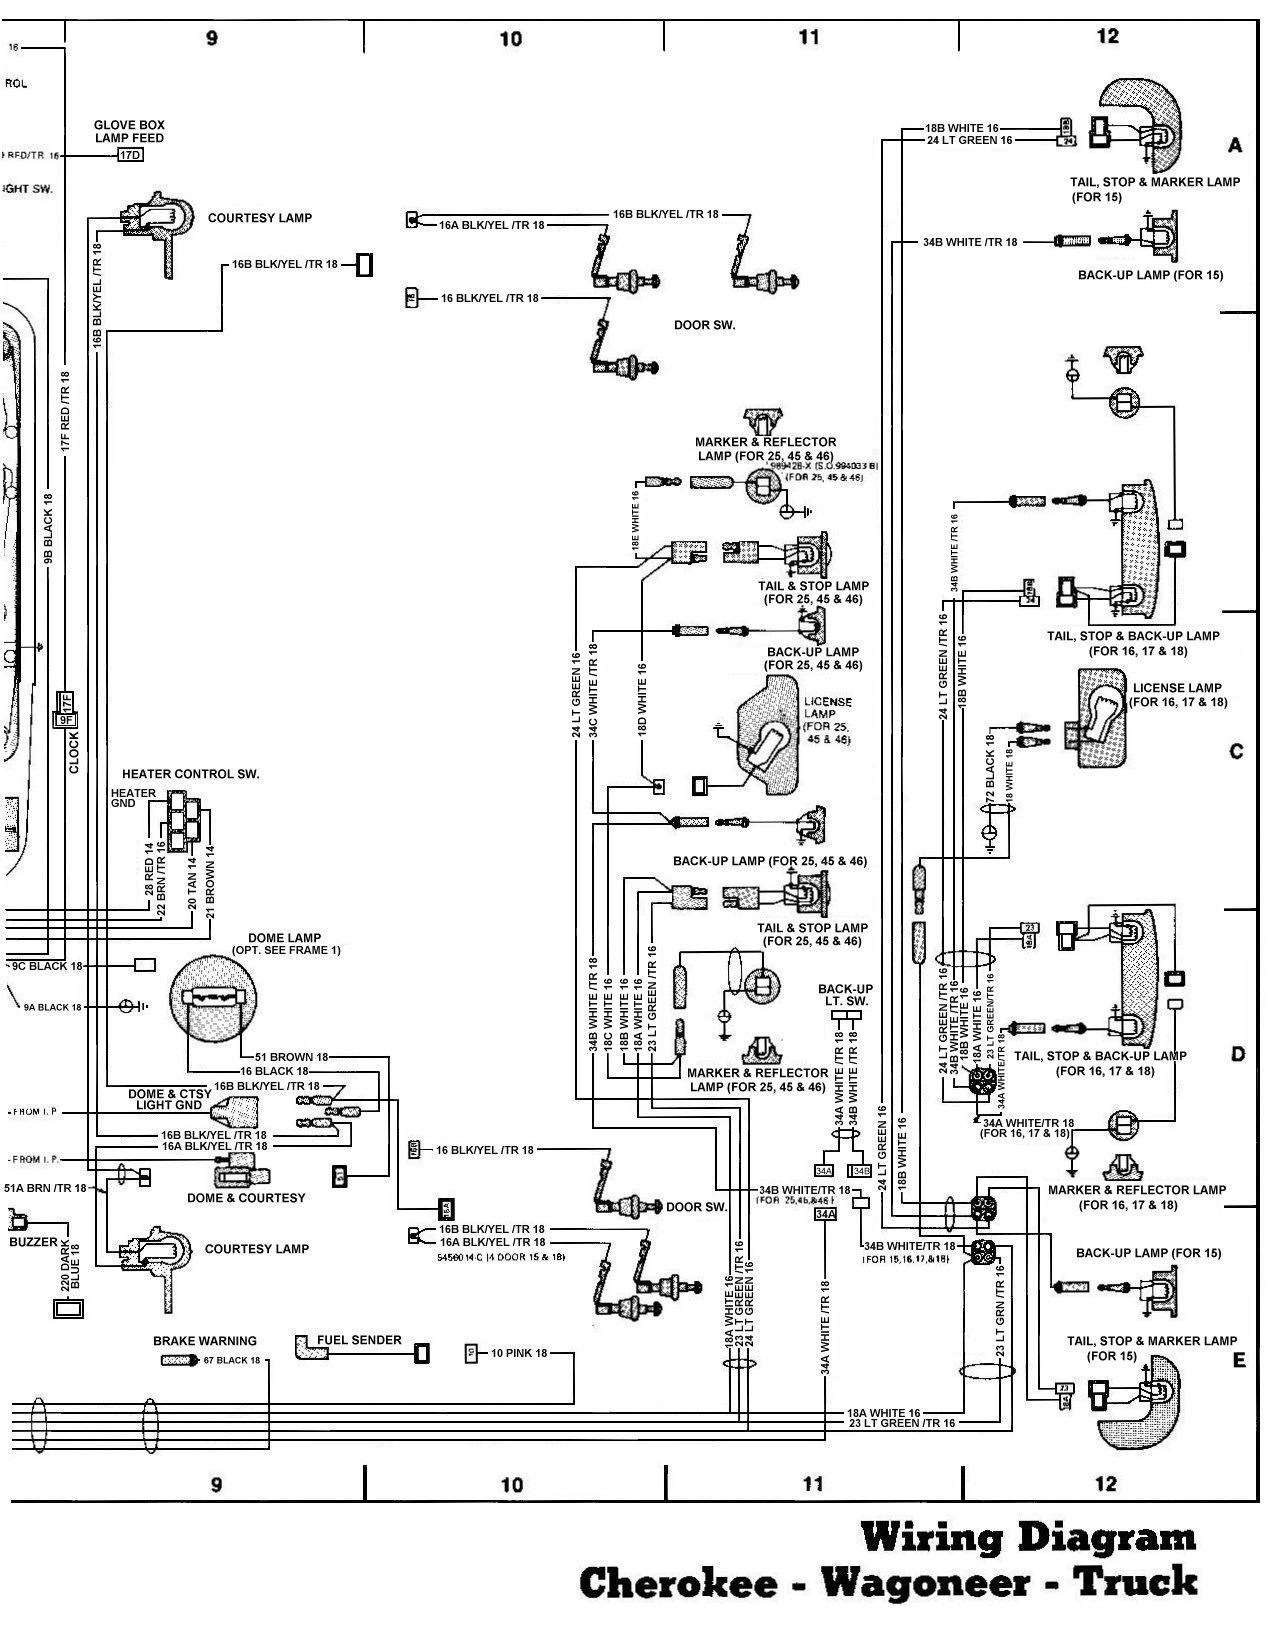 90 Camaro Wiring Diagram